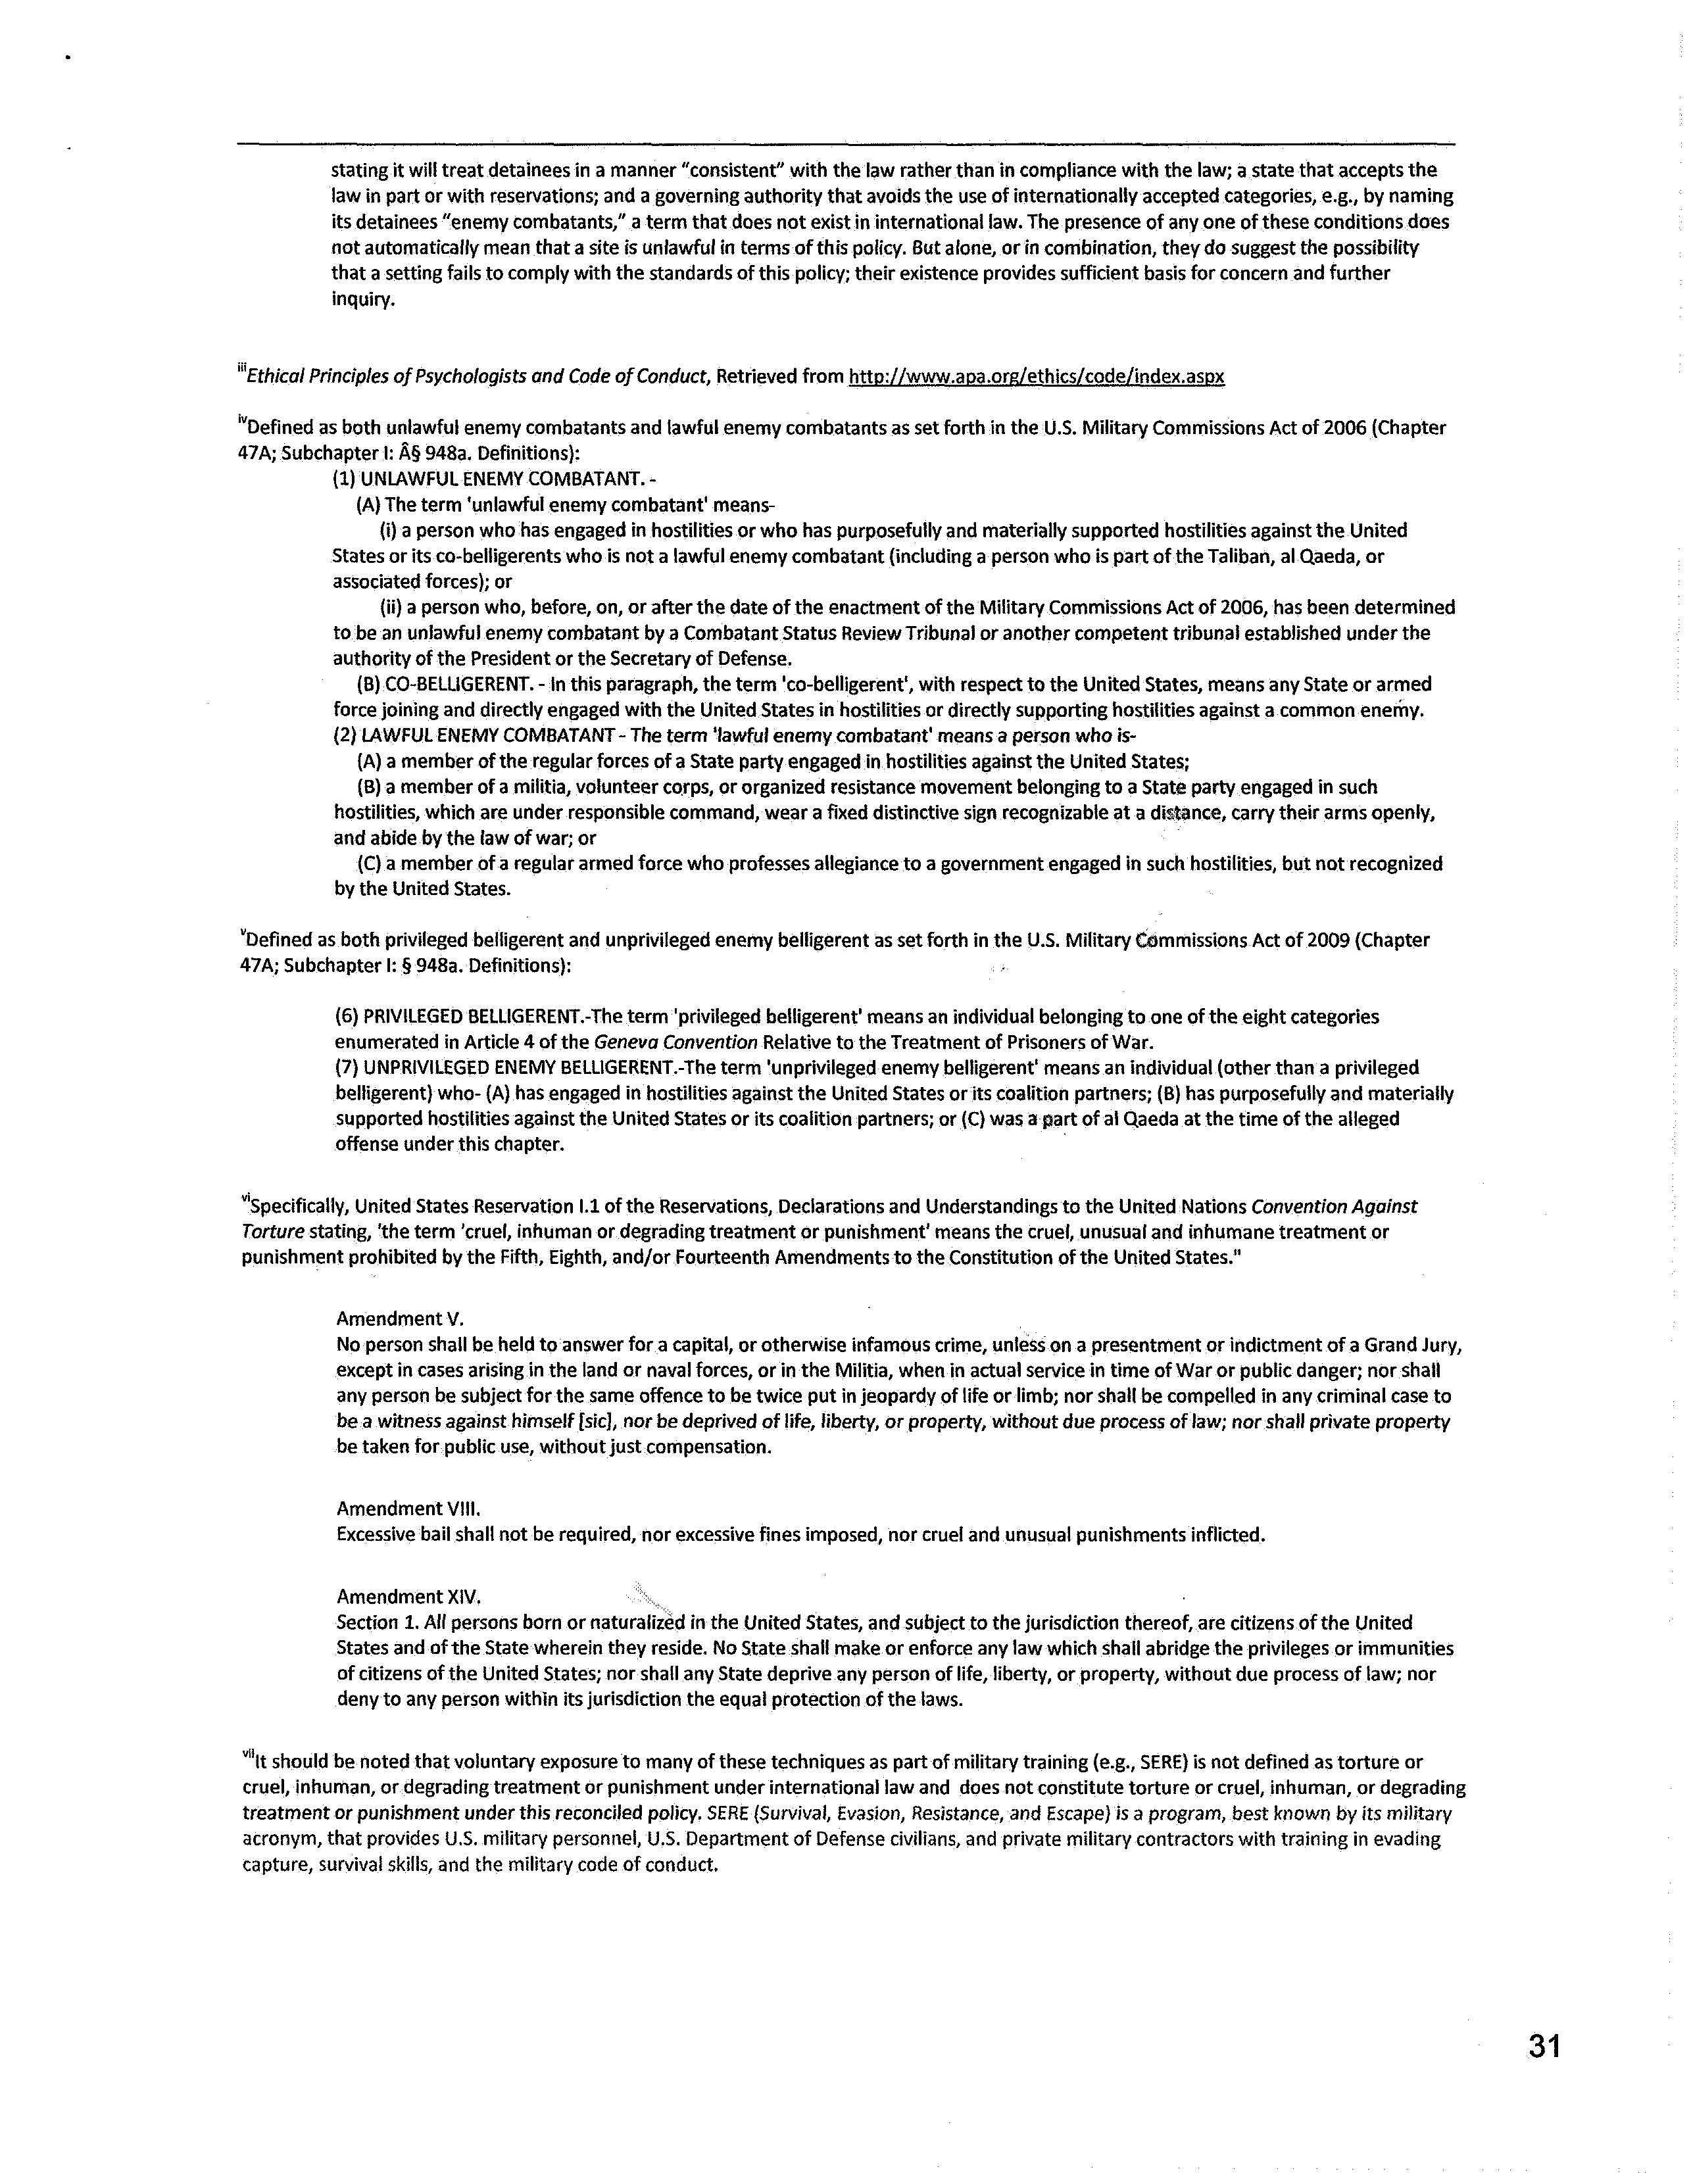 cor agenda action item 3 page 11 jpg policy related to psychologists work in national security settings and reaffirmation of the apa position against torture and other cruel inhuman